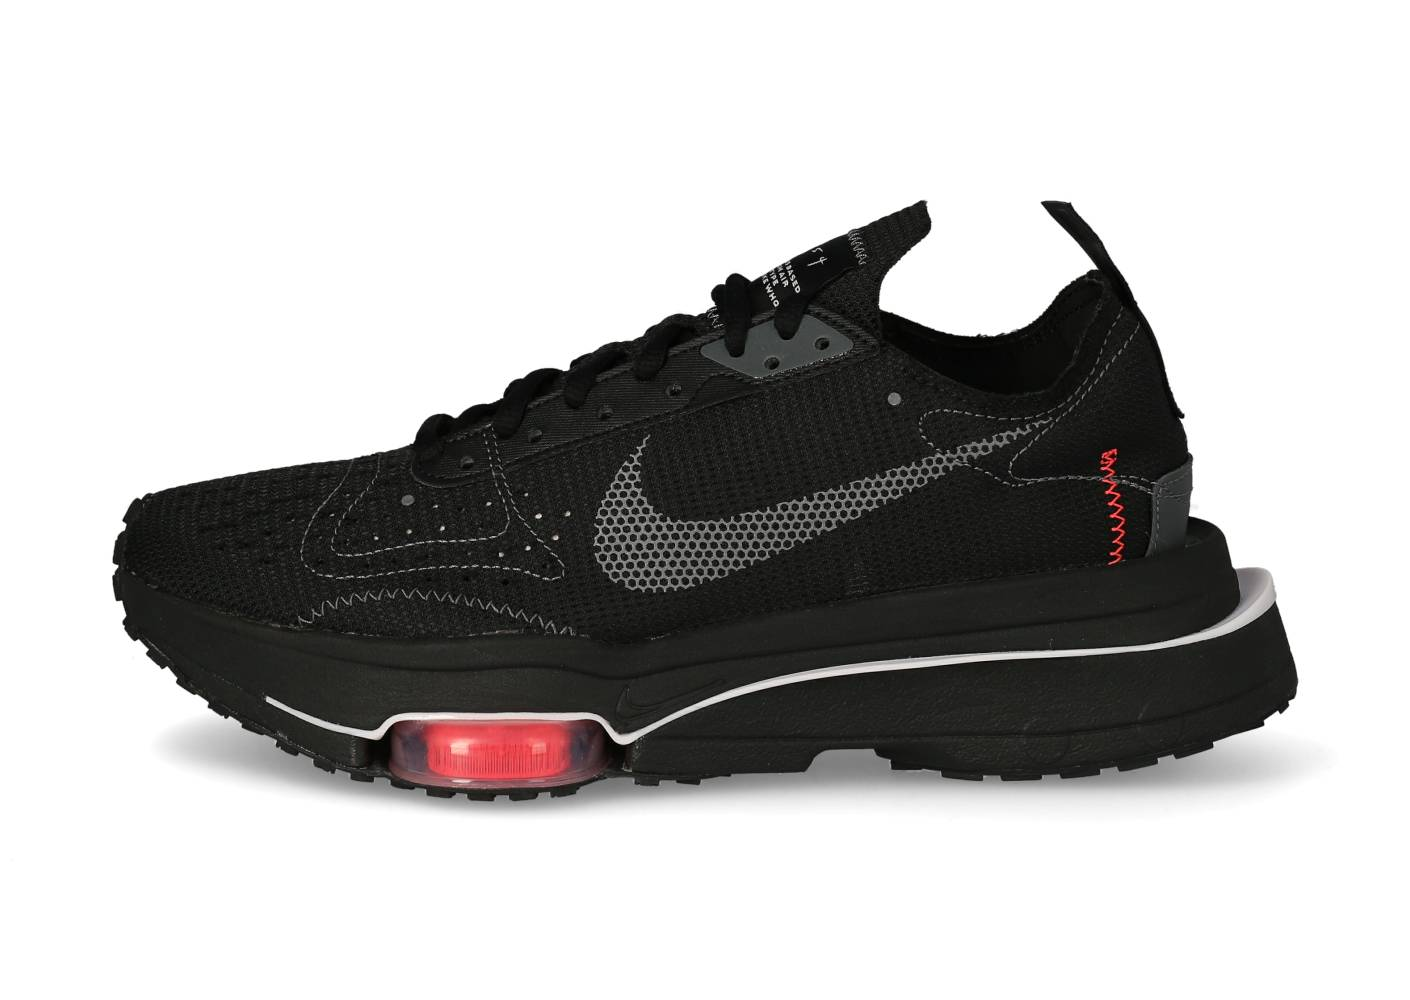 Nike Homme Air Zoom-type Noire Et Anthracite Rétro-Running 40